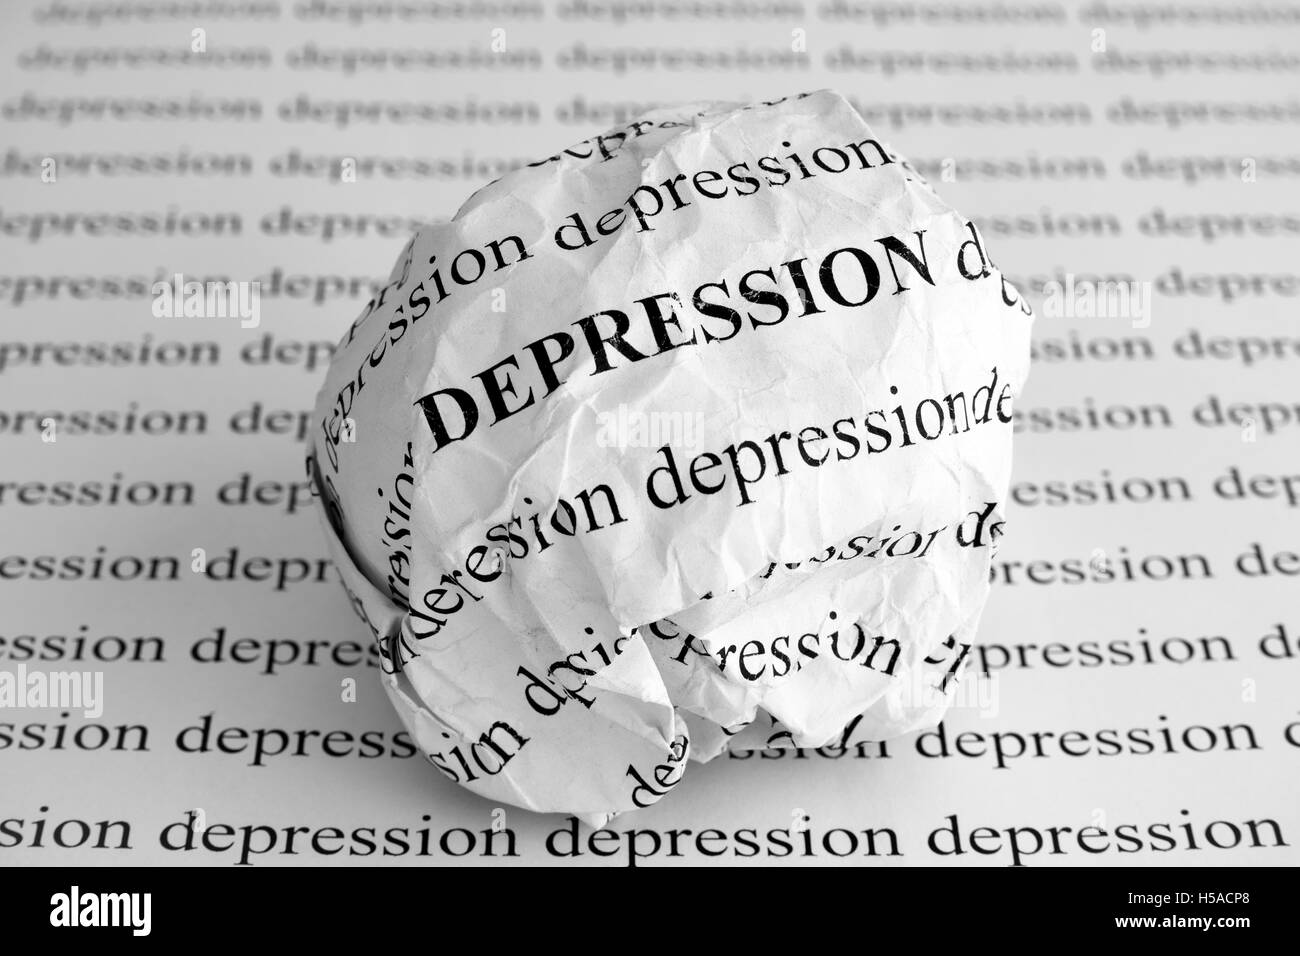 Crumpled paper ball with words Depression. Black and white. - Stock Image